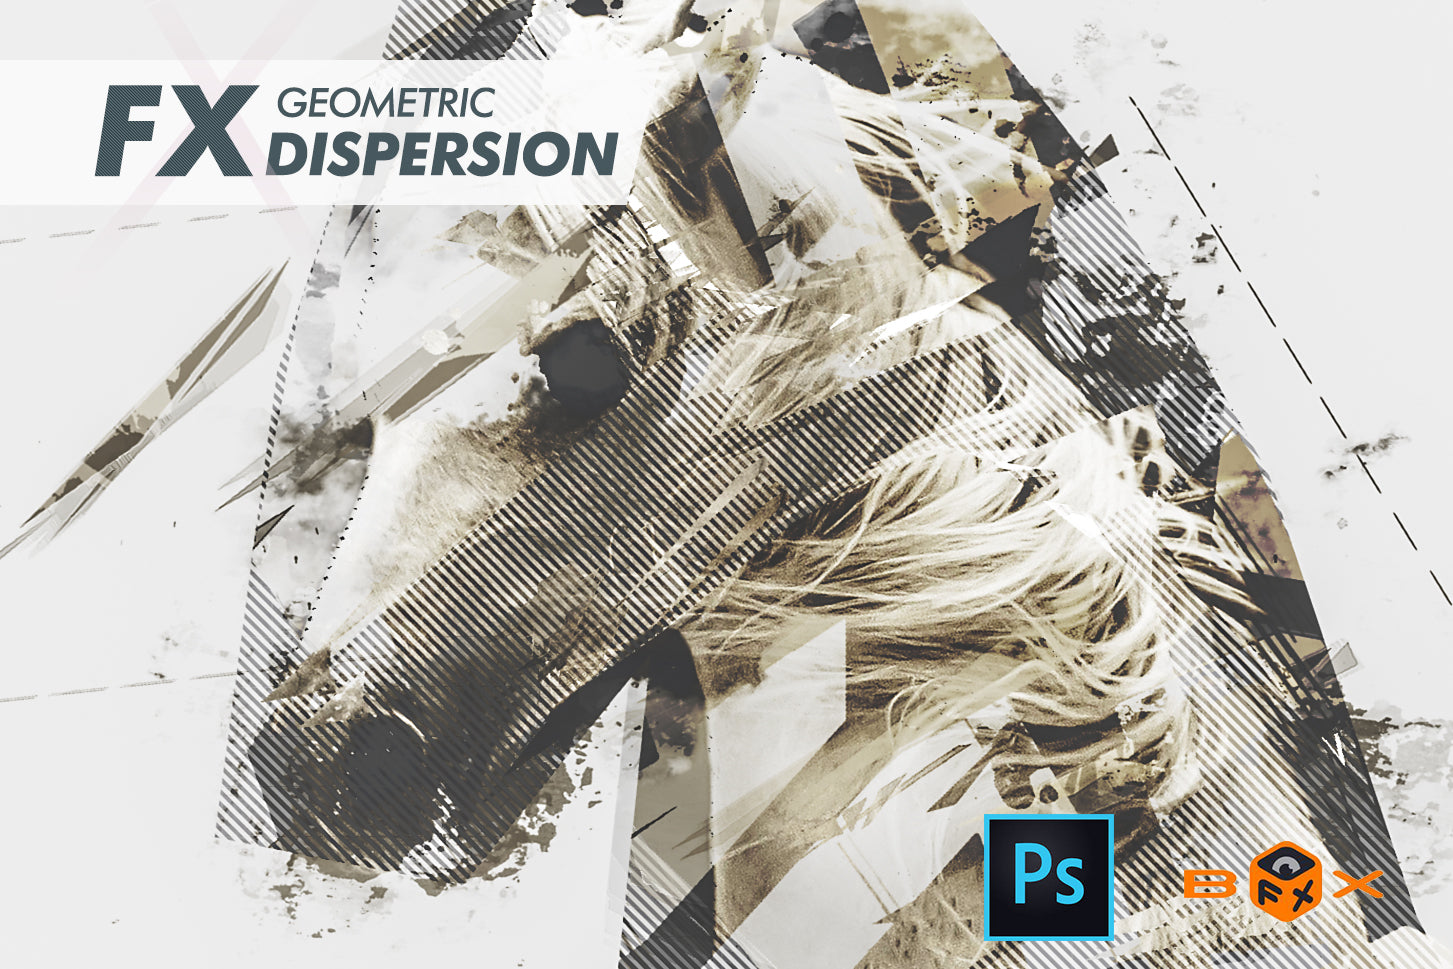 Geometric Dispersion FX Photoshop Add-On